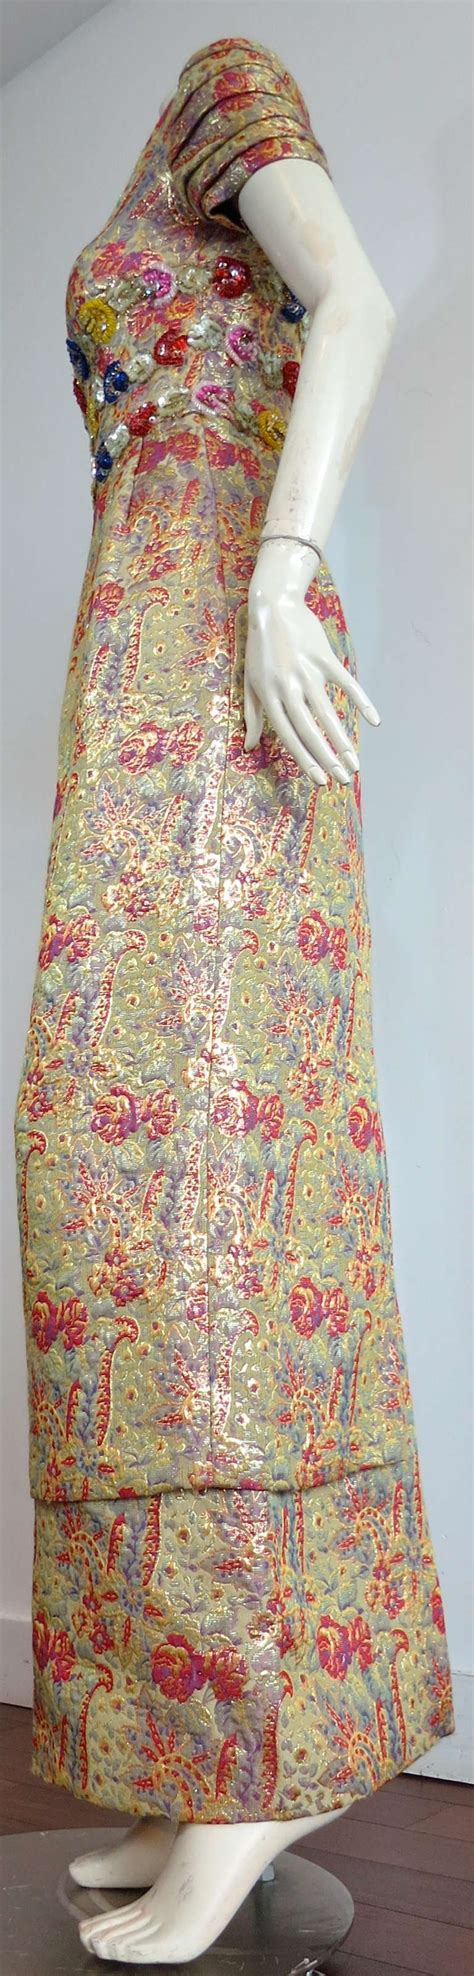 vintage beaded dresses for sale vintage beaded brocade evening dress for sale at 1stdibs